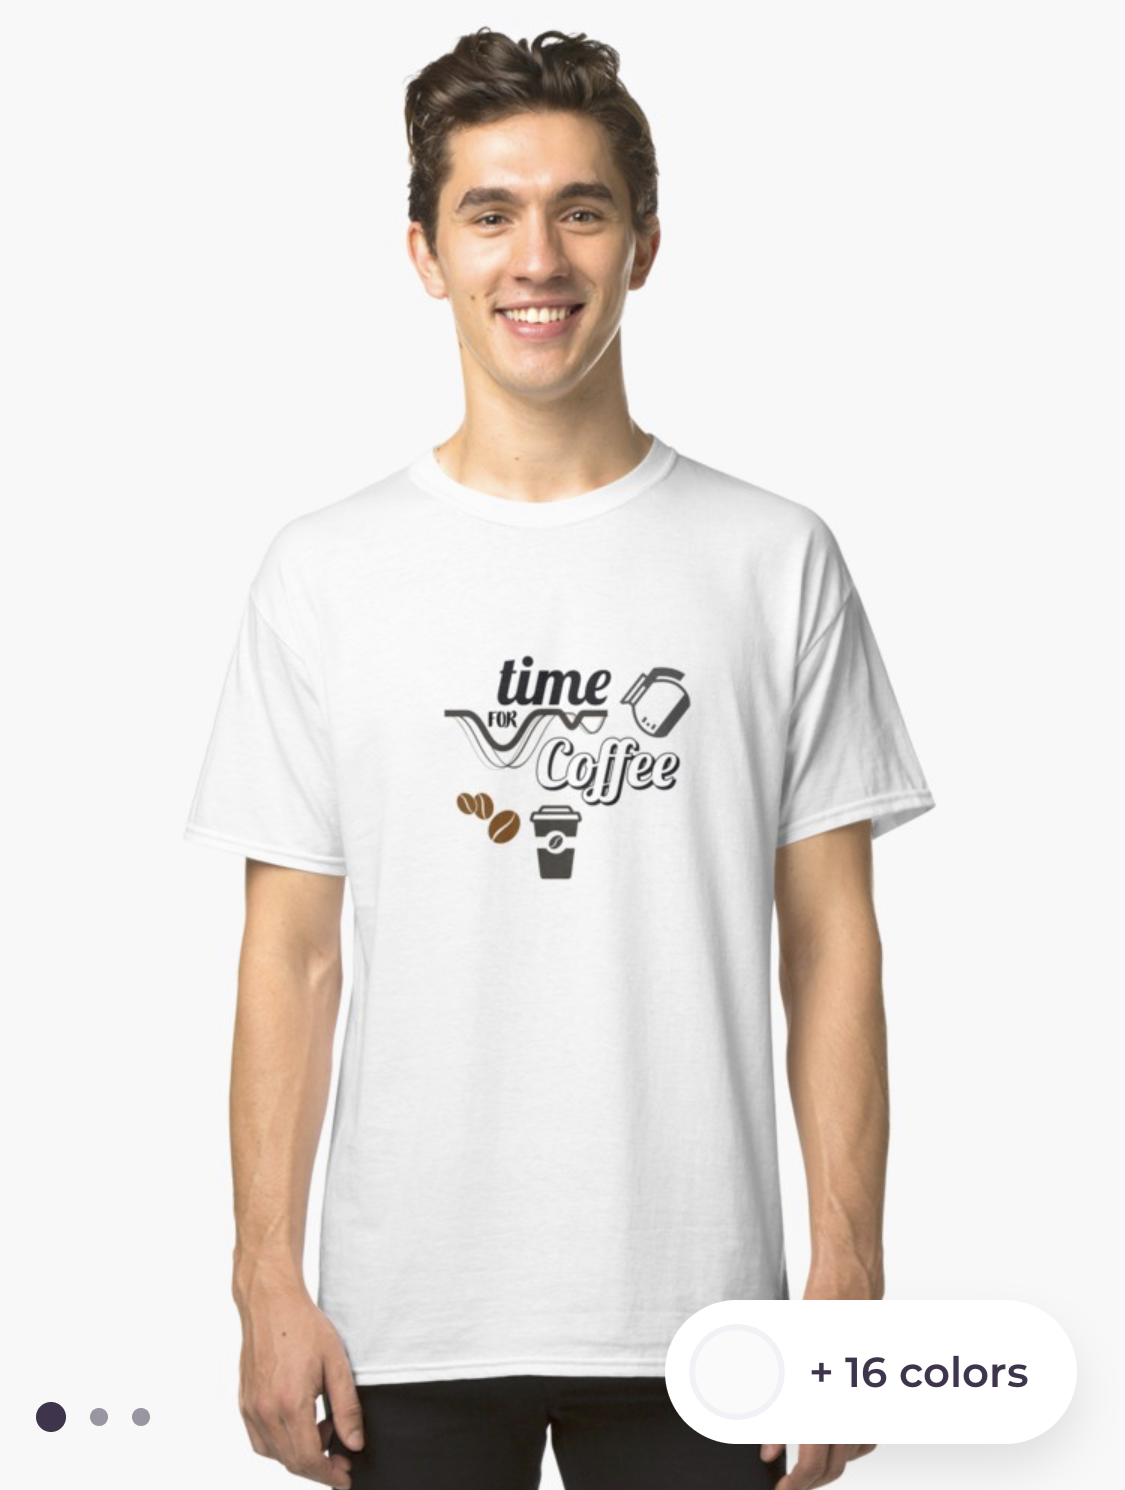 Time for Coffee T-Shirt Exclusive